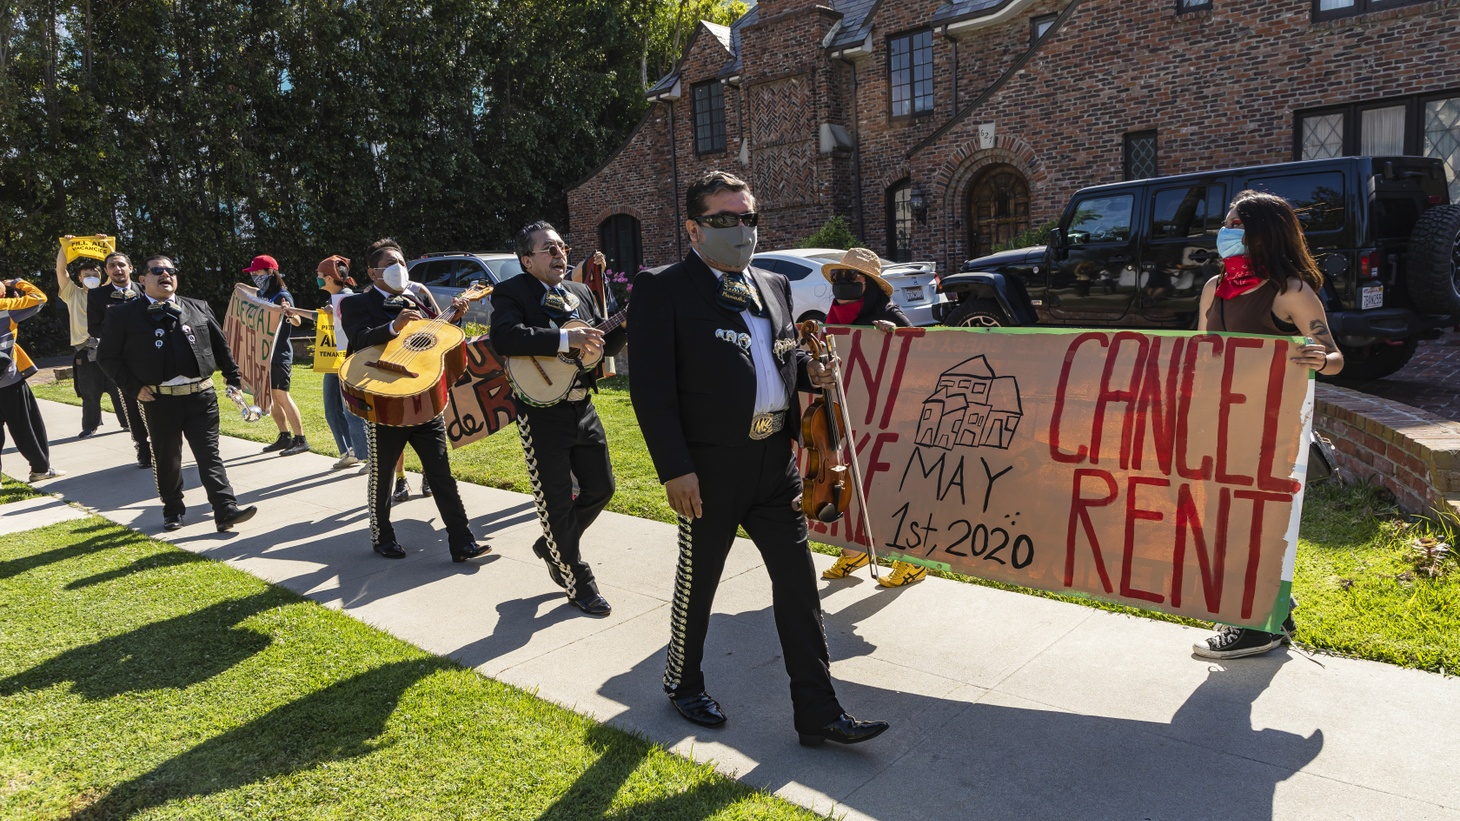 A tenants' rights group marches to the Los Angeles Mayor's mansion to demonstrate for renters' rights. Many LA residents have lost work due to the COVID-19 pandemic, and they have to choose between buying food or paying rent. 5/1/2020 Los Angeles, CA.